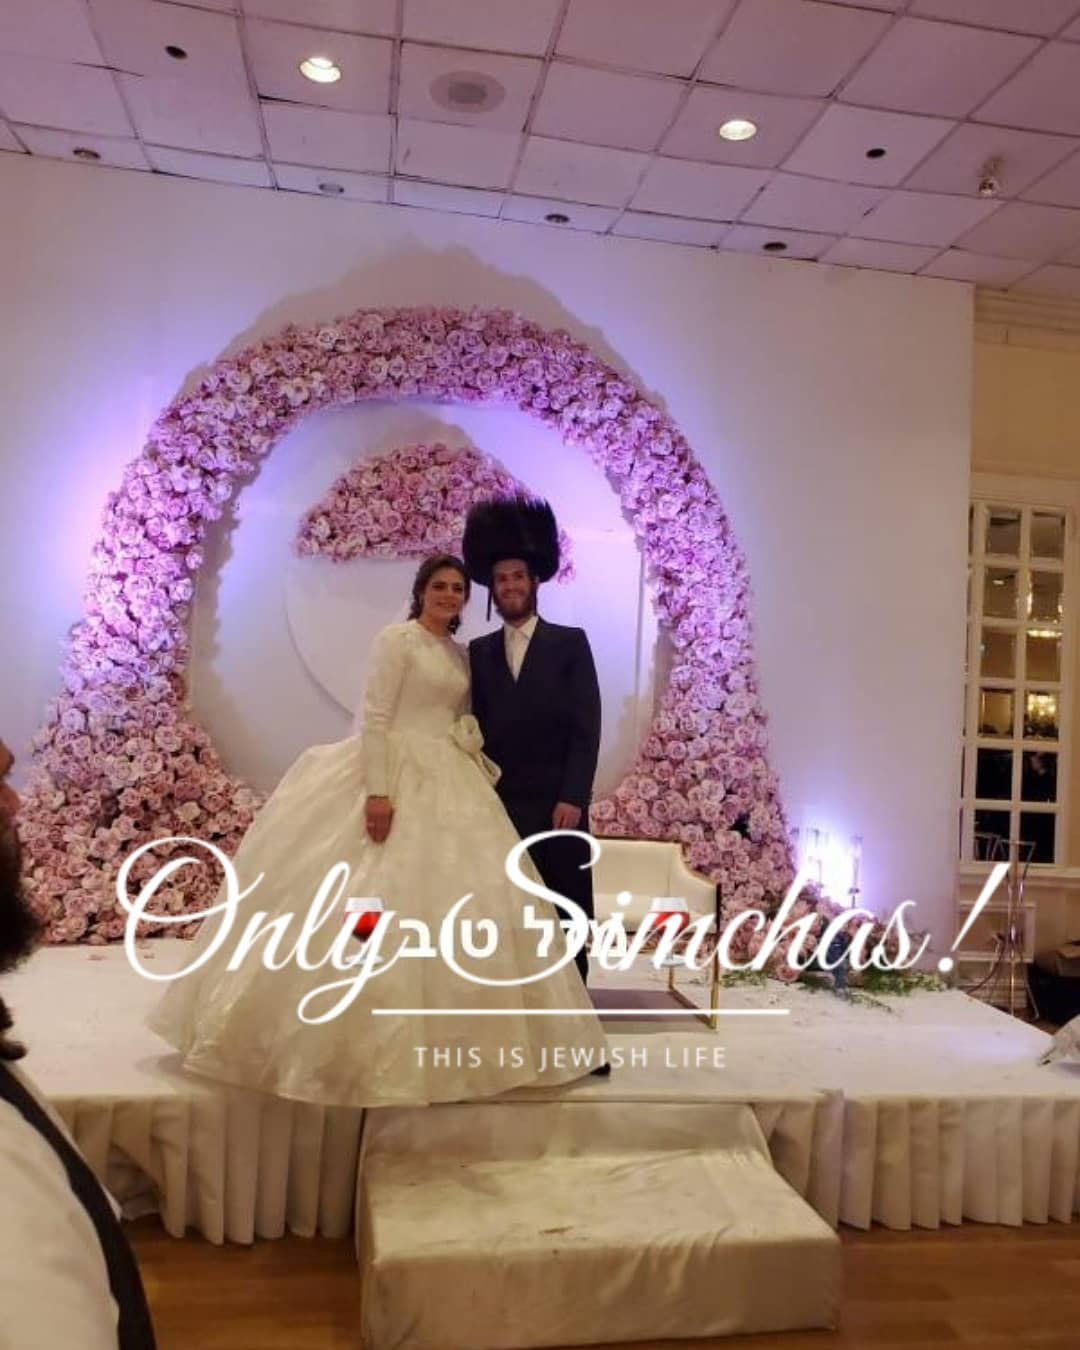 Wedding of Shulem and Chumy Meisels! #onlysimchas